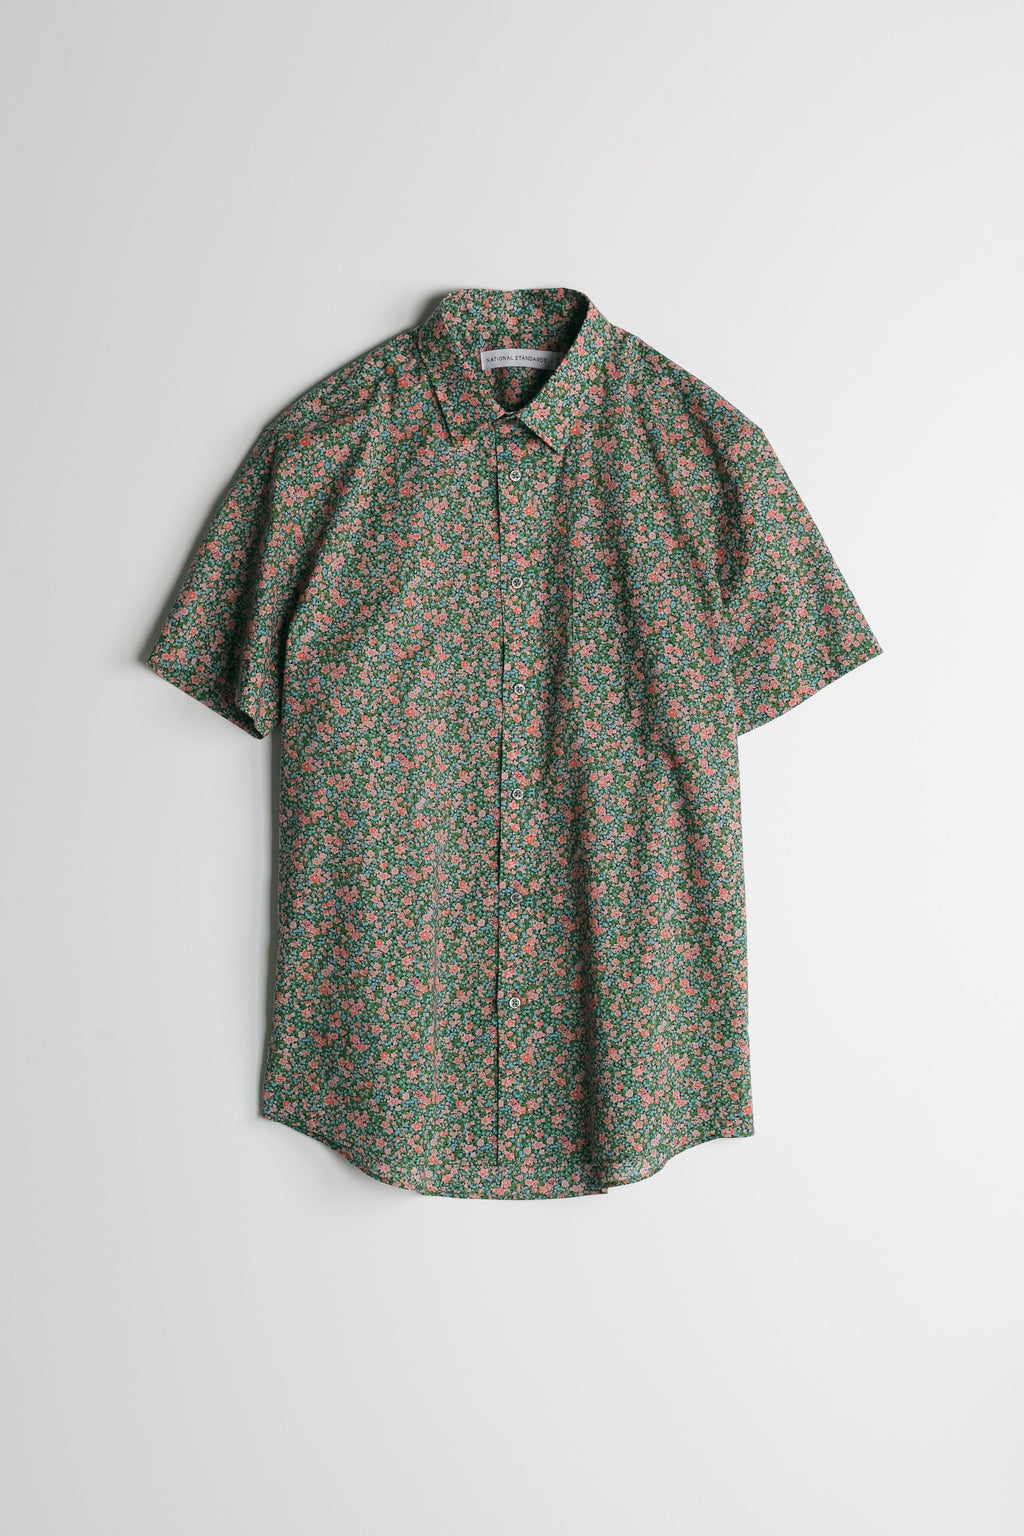 japanese-floral-print-in-green-and-papaya 01